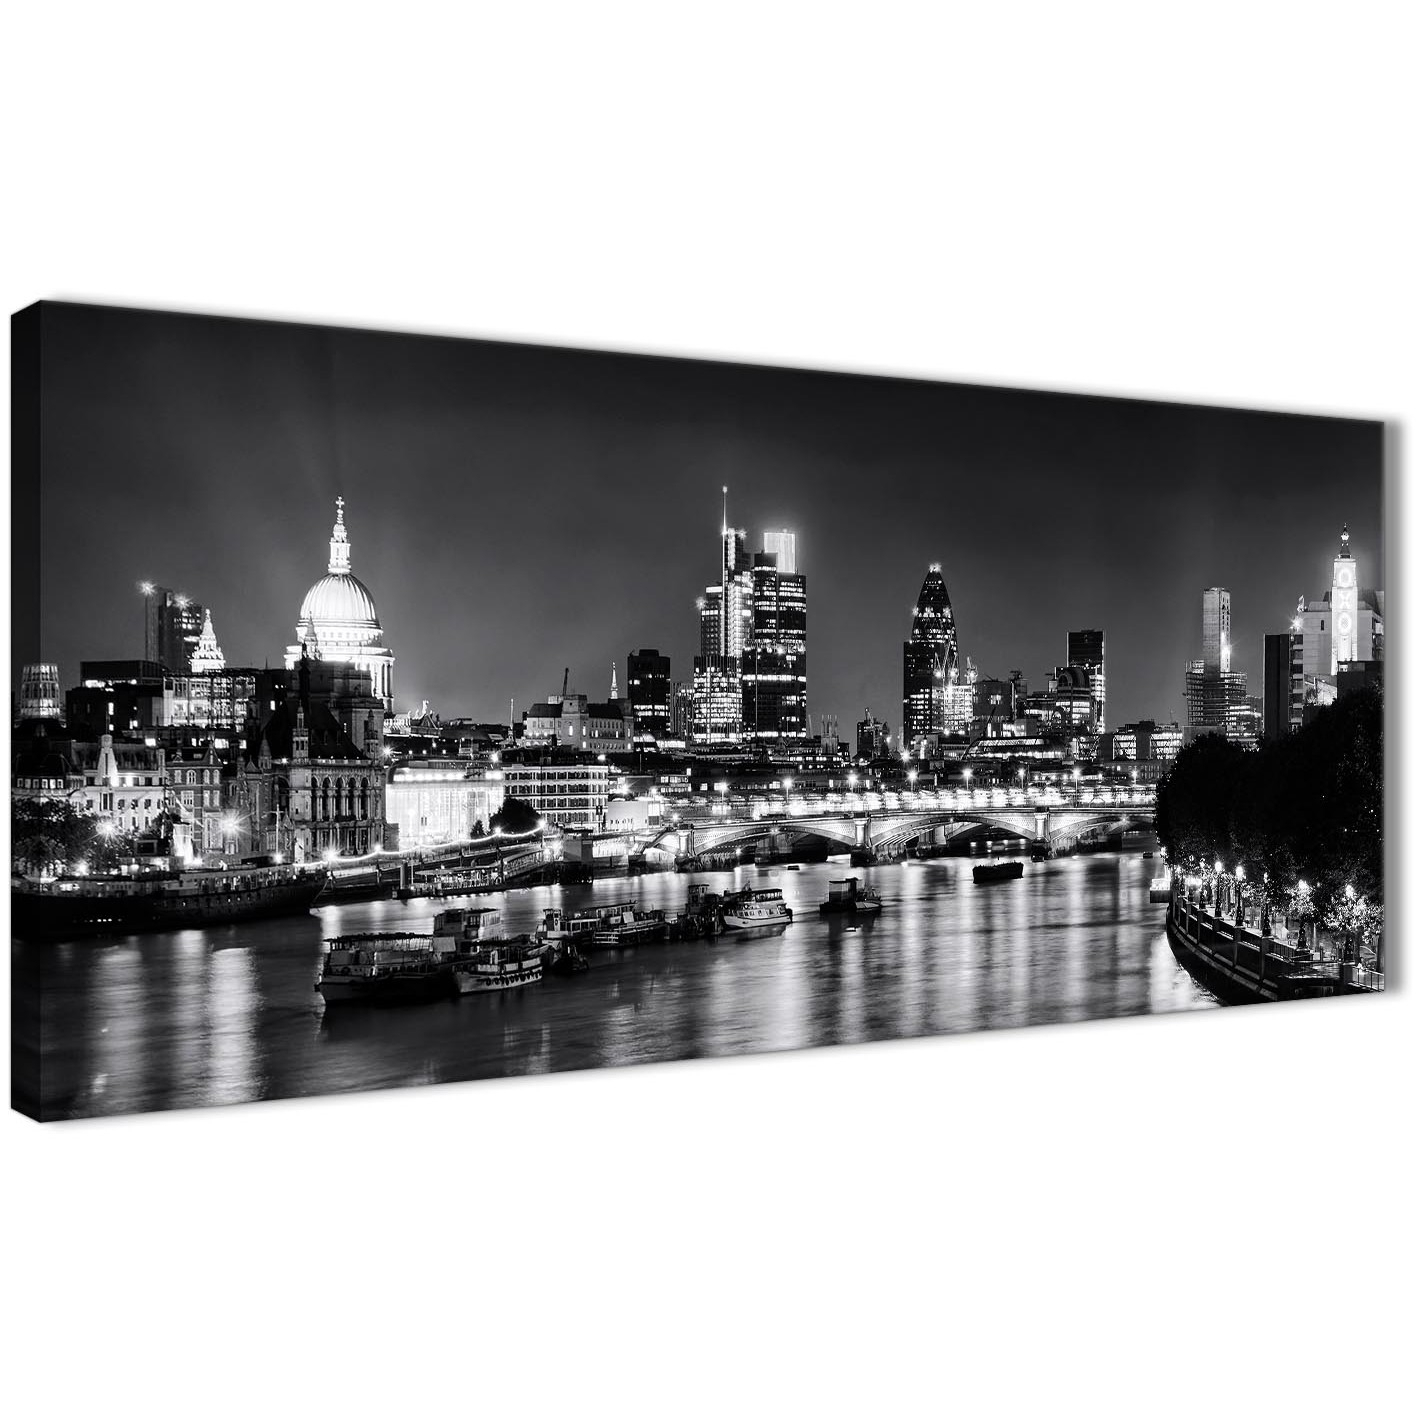 River Thames Skyline Of London Canvas Art Pictures – Landscape Regarding 2017 London Canvas Wall Art (View 13 of 15)